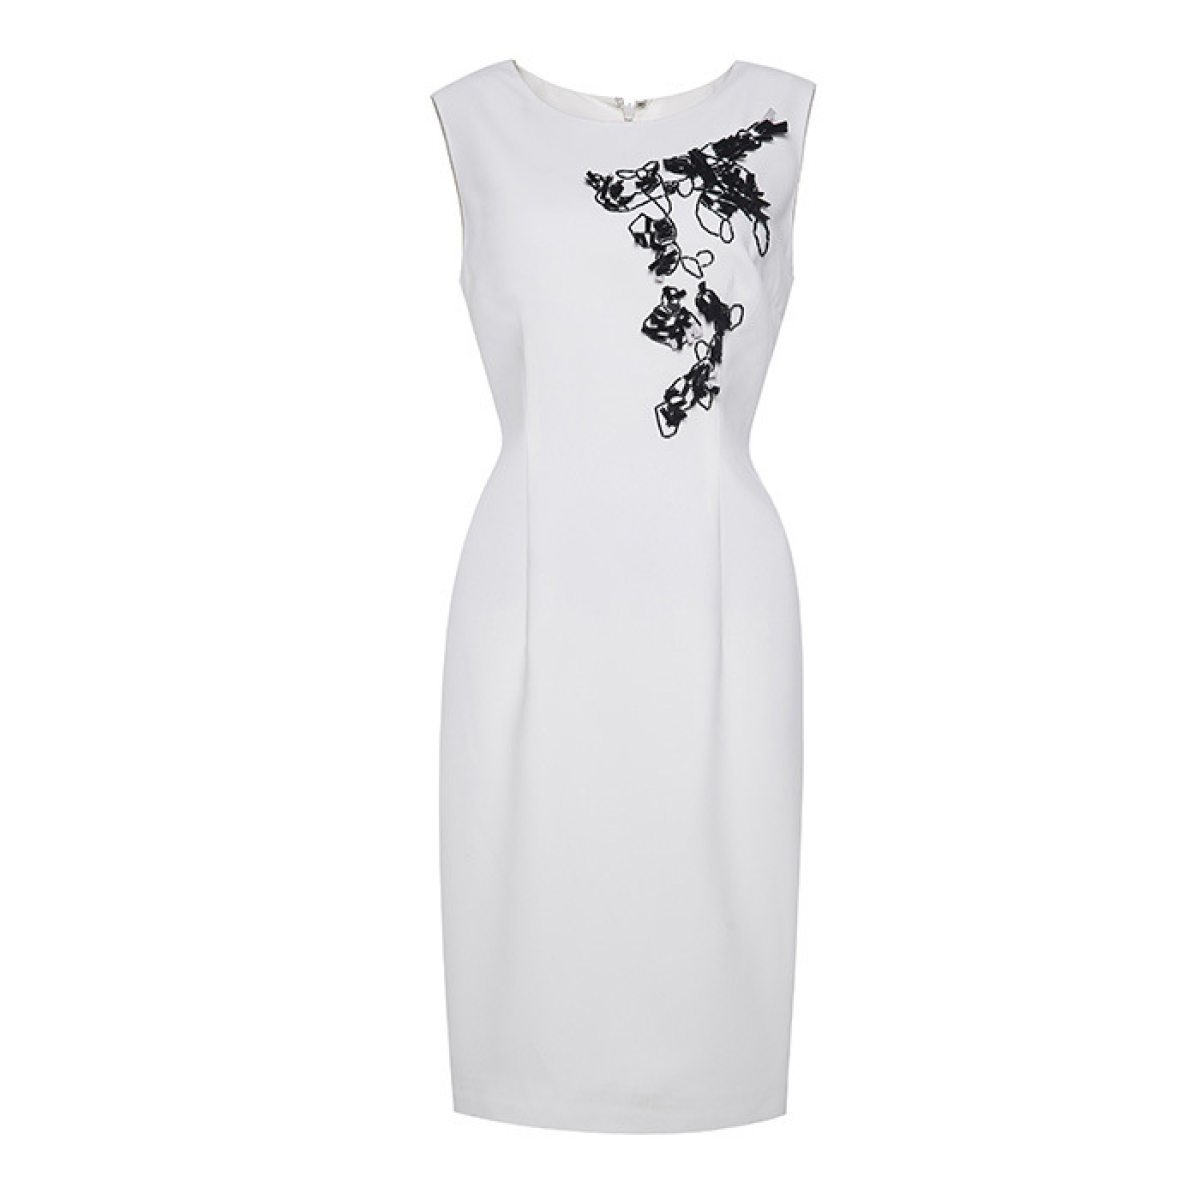 China Palaeowind Female Spring And Summer Temperament Beaded Dress Waist Skirt White Dress,White-S